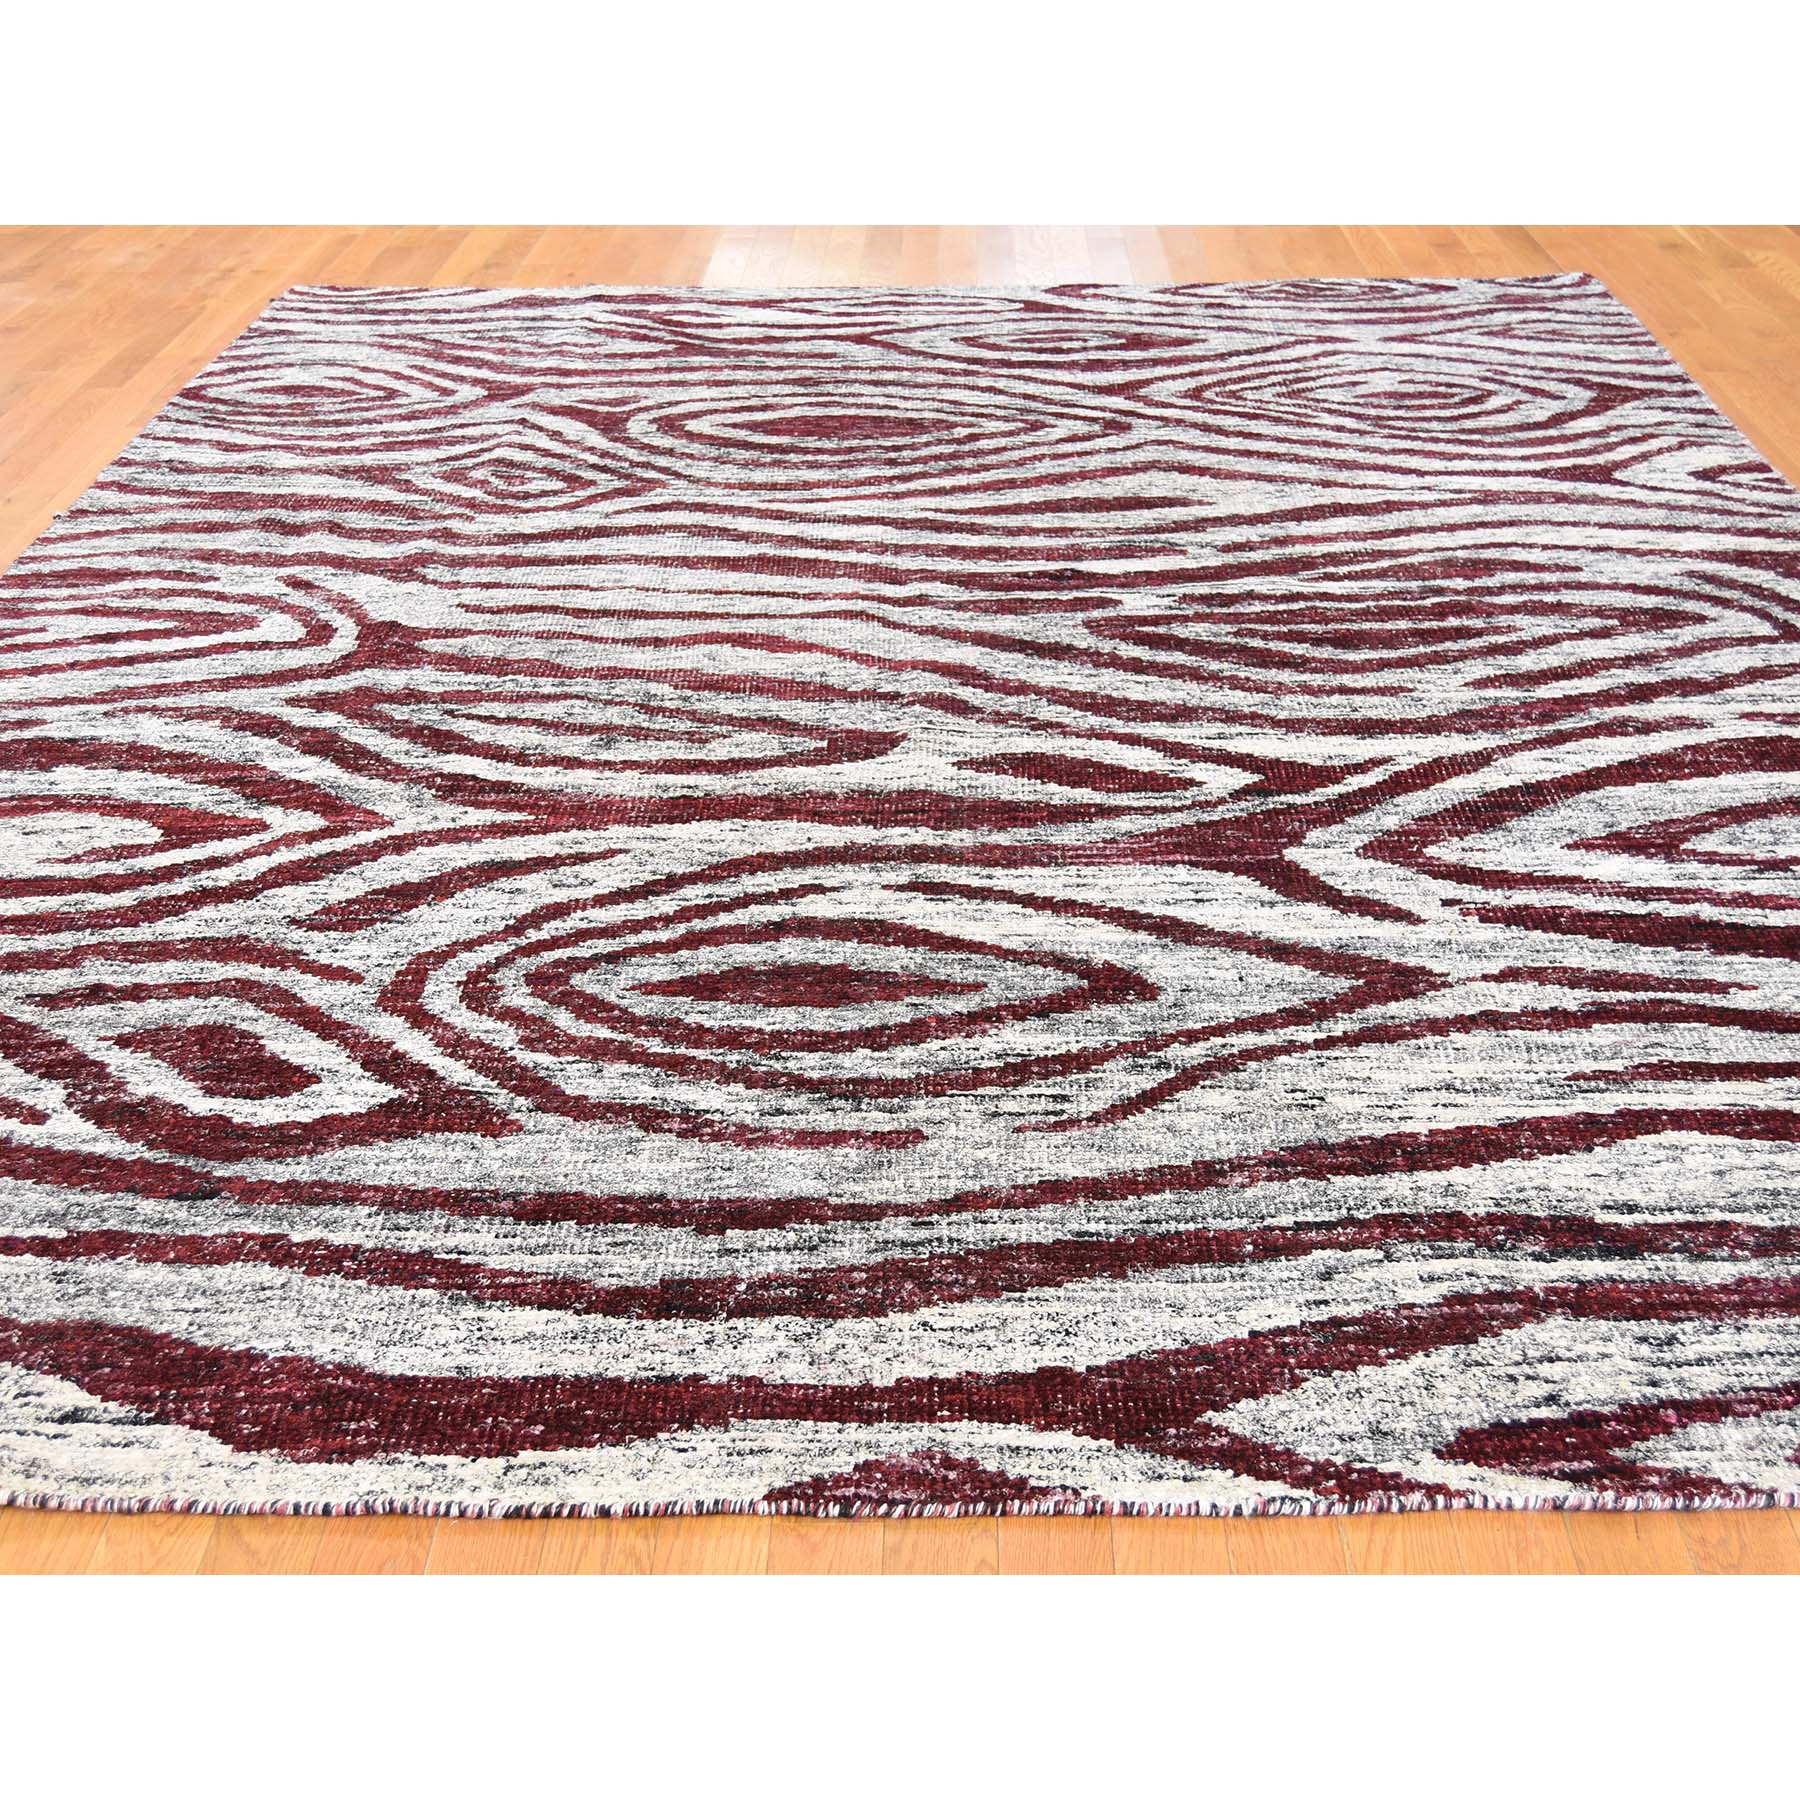 9'x11'7'' Hand Knotted Sari Silk with Tree Bark Design Oriental Rug